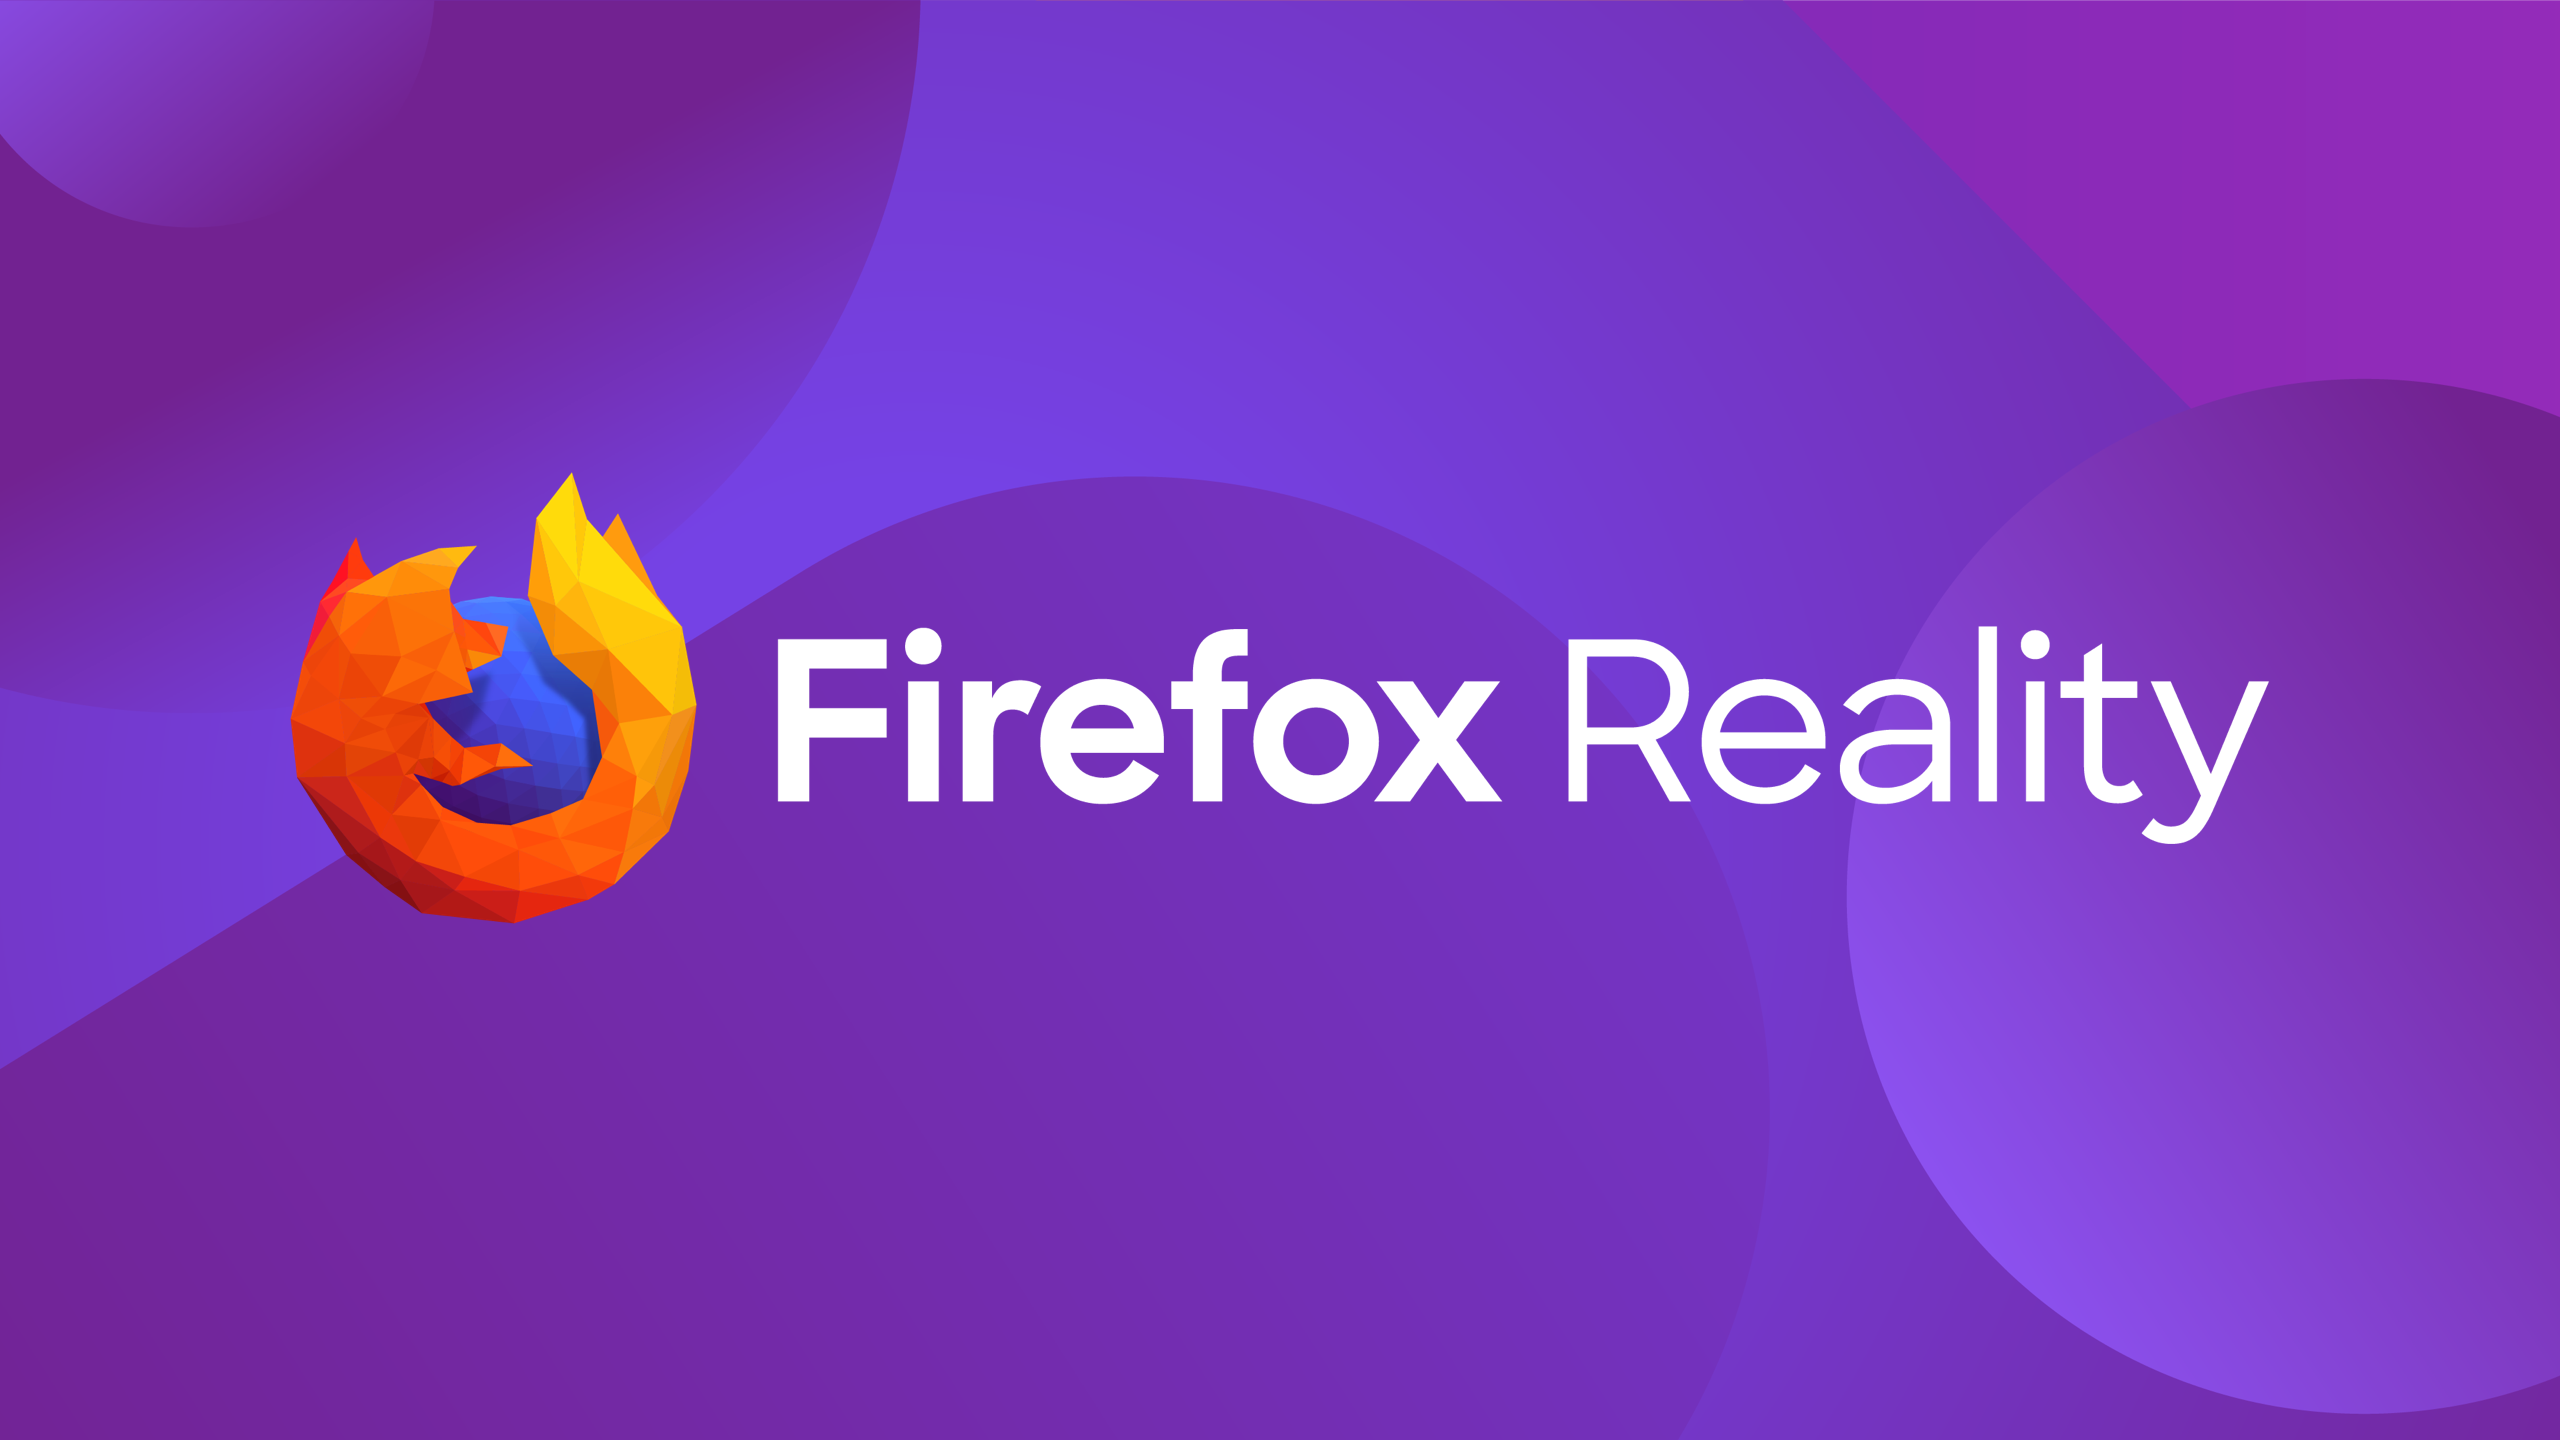 Firefox Reality for HoloLens 2